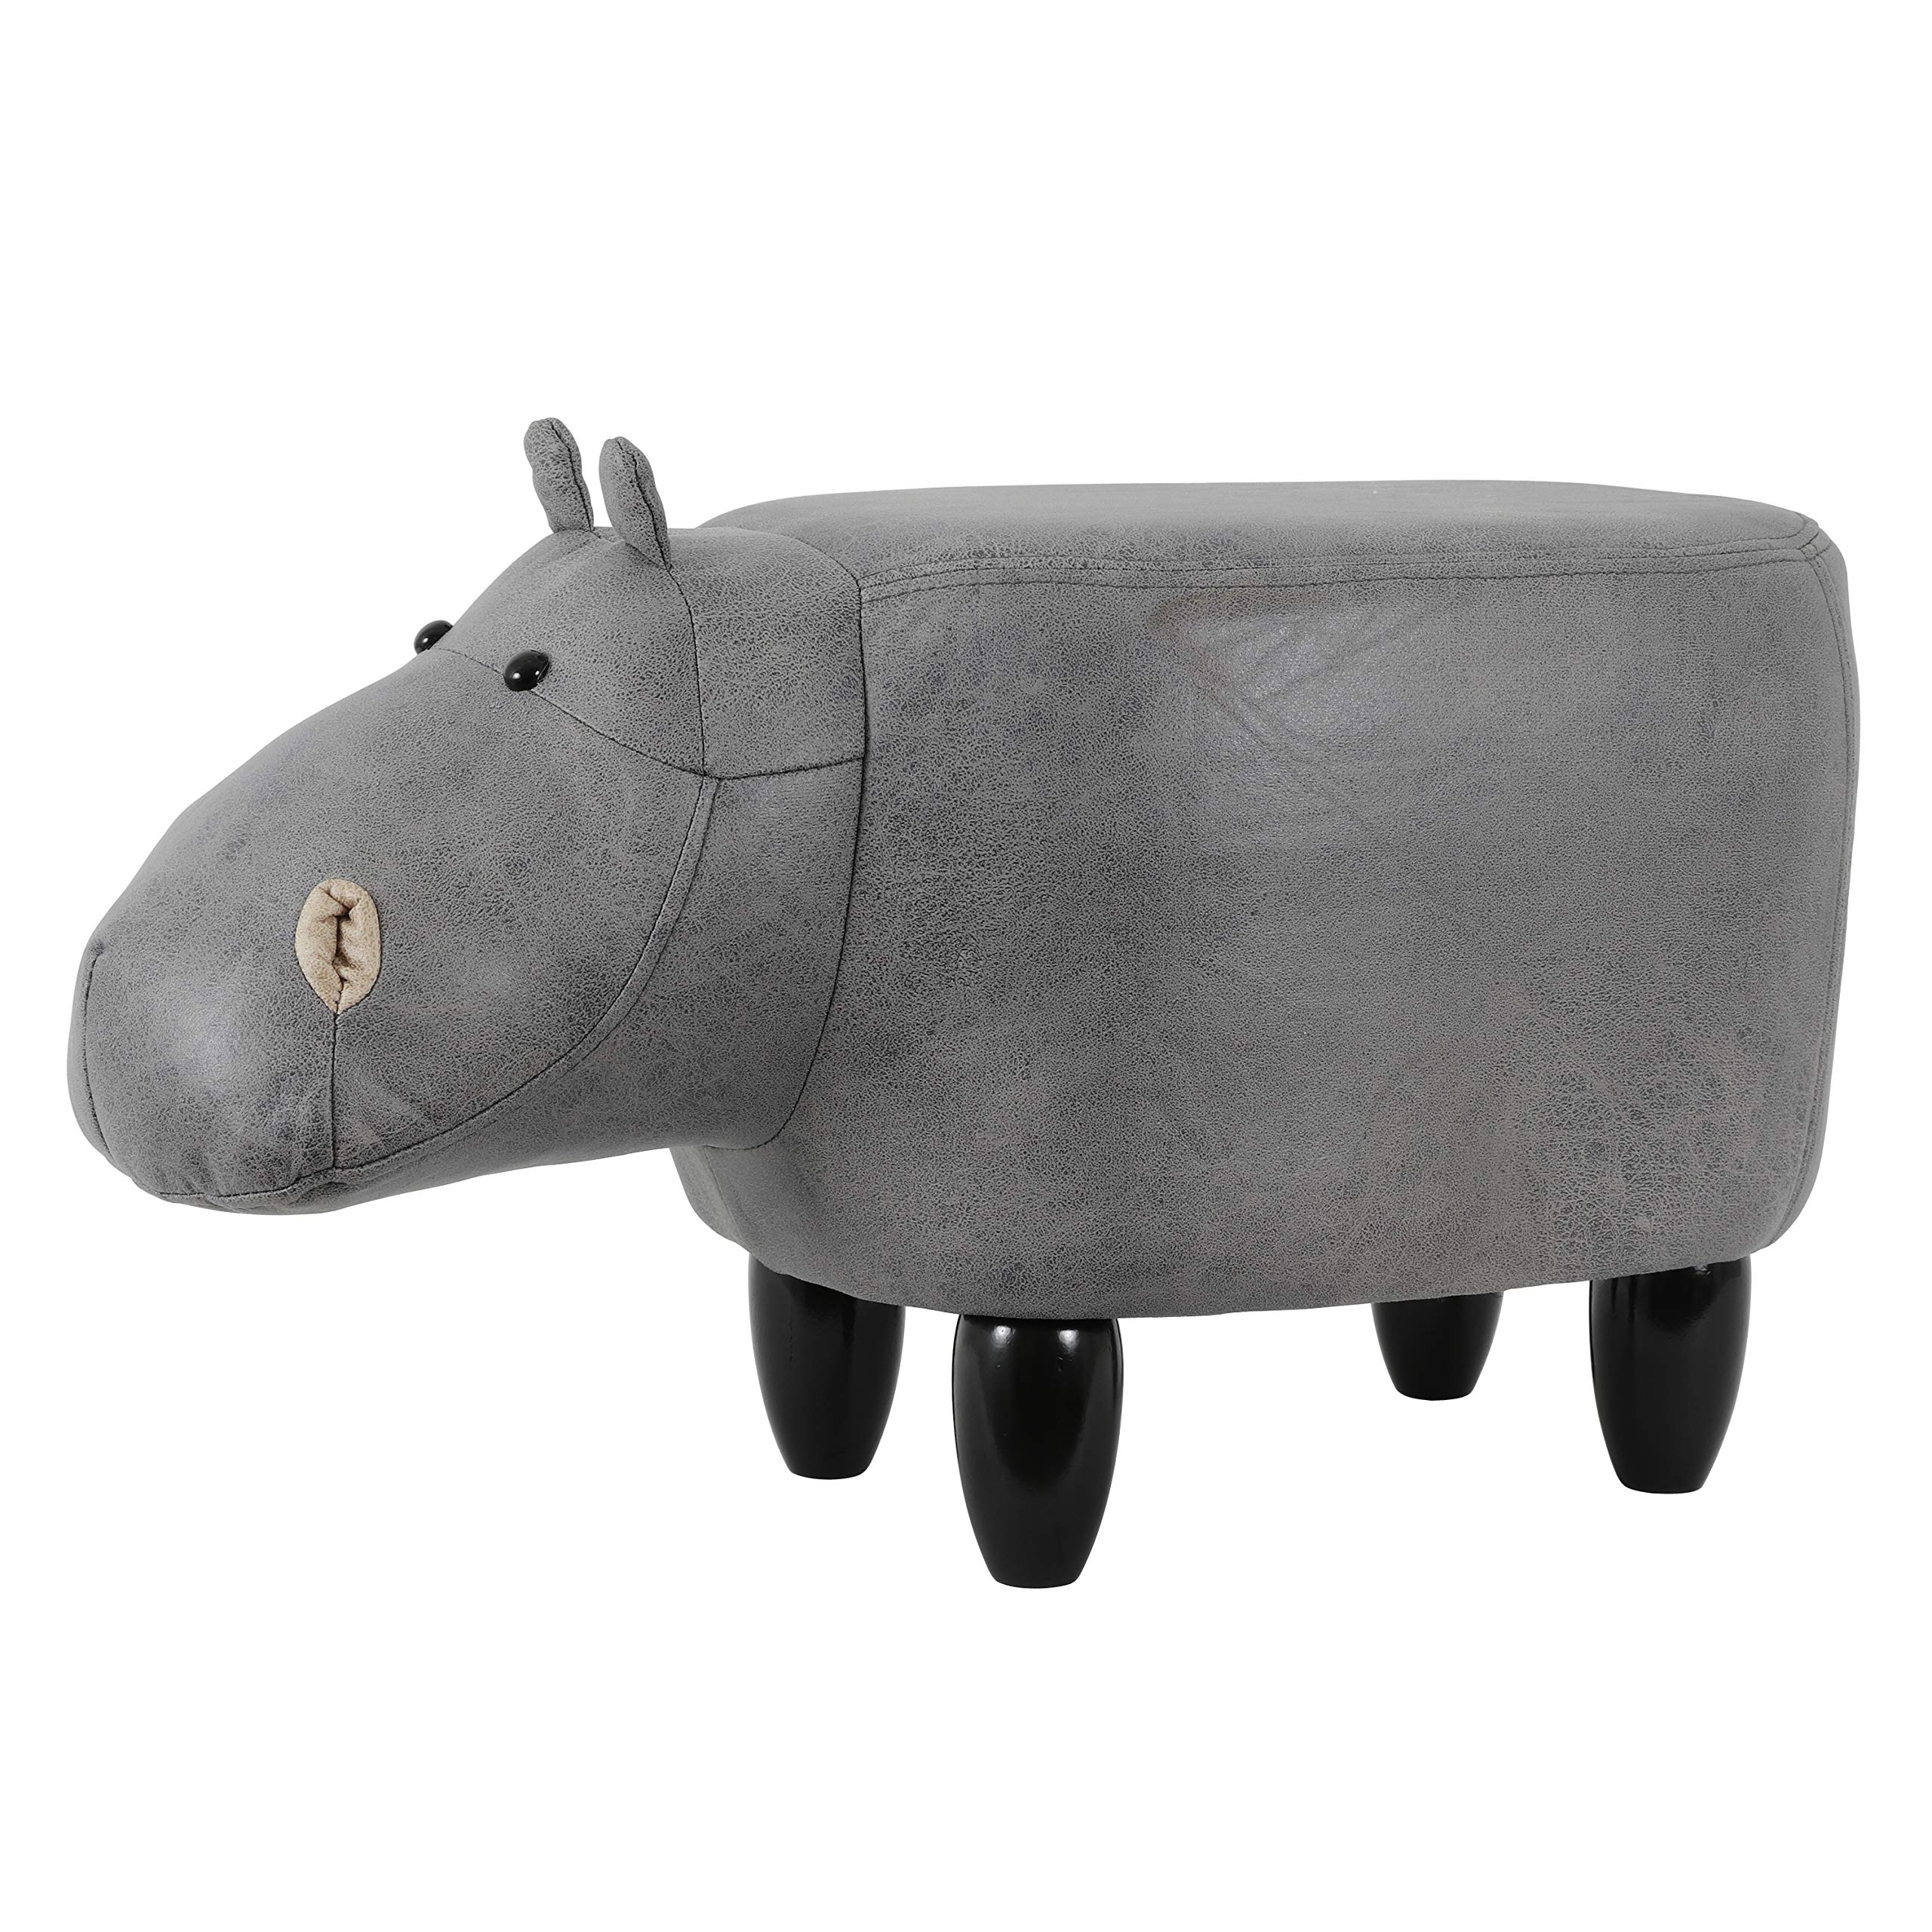 Decor Therapy Storage Stool, Hippo